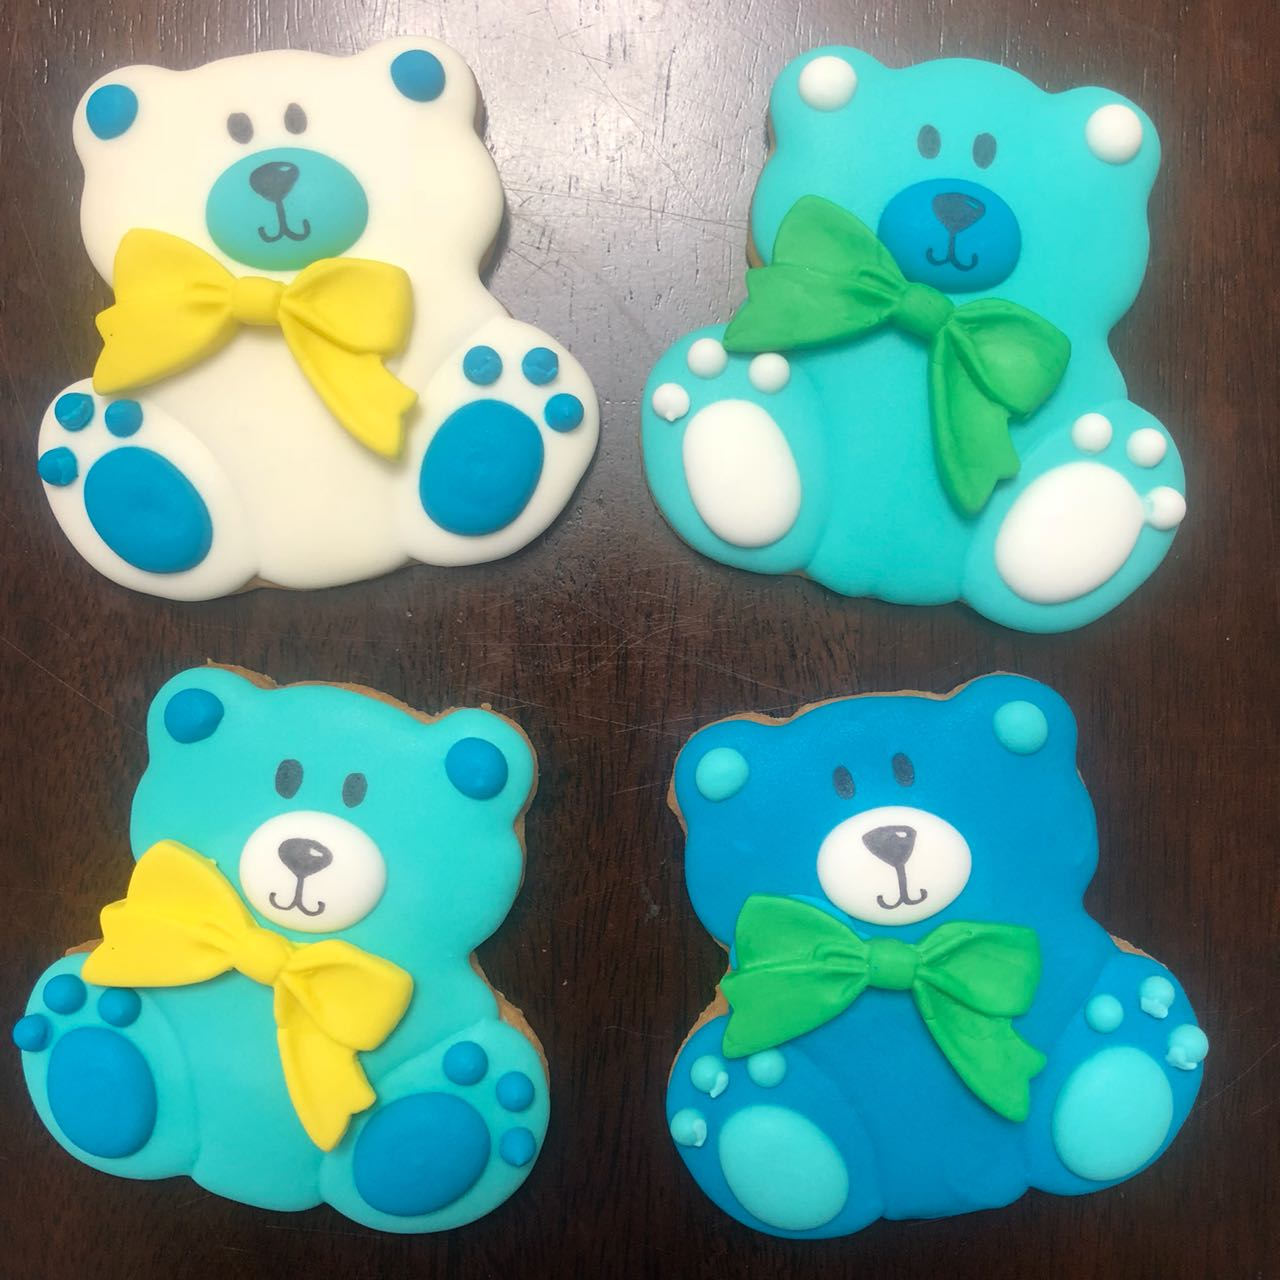 cookie cookies bear teddy bear bow blue white green yellow baby shower royal icing